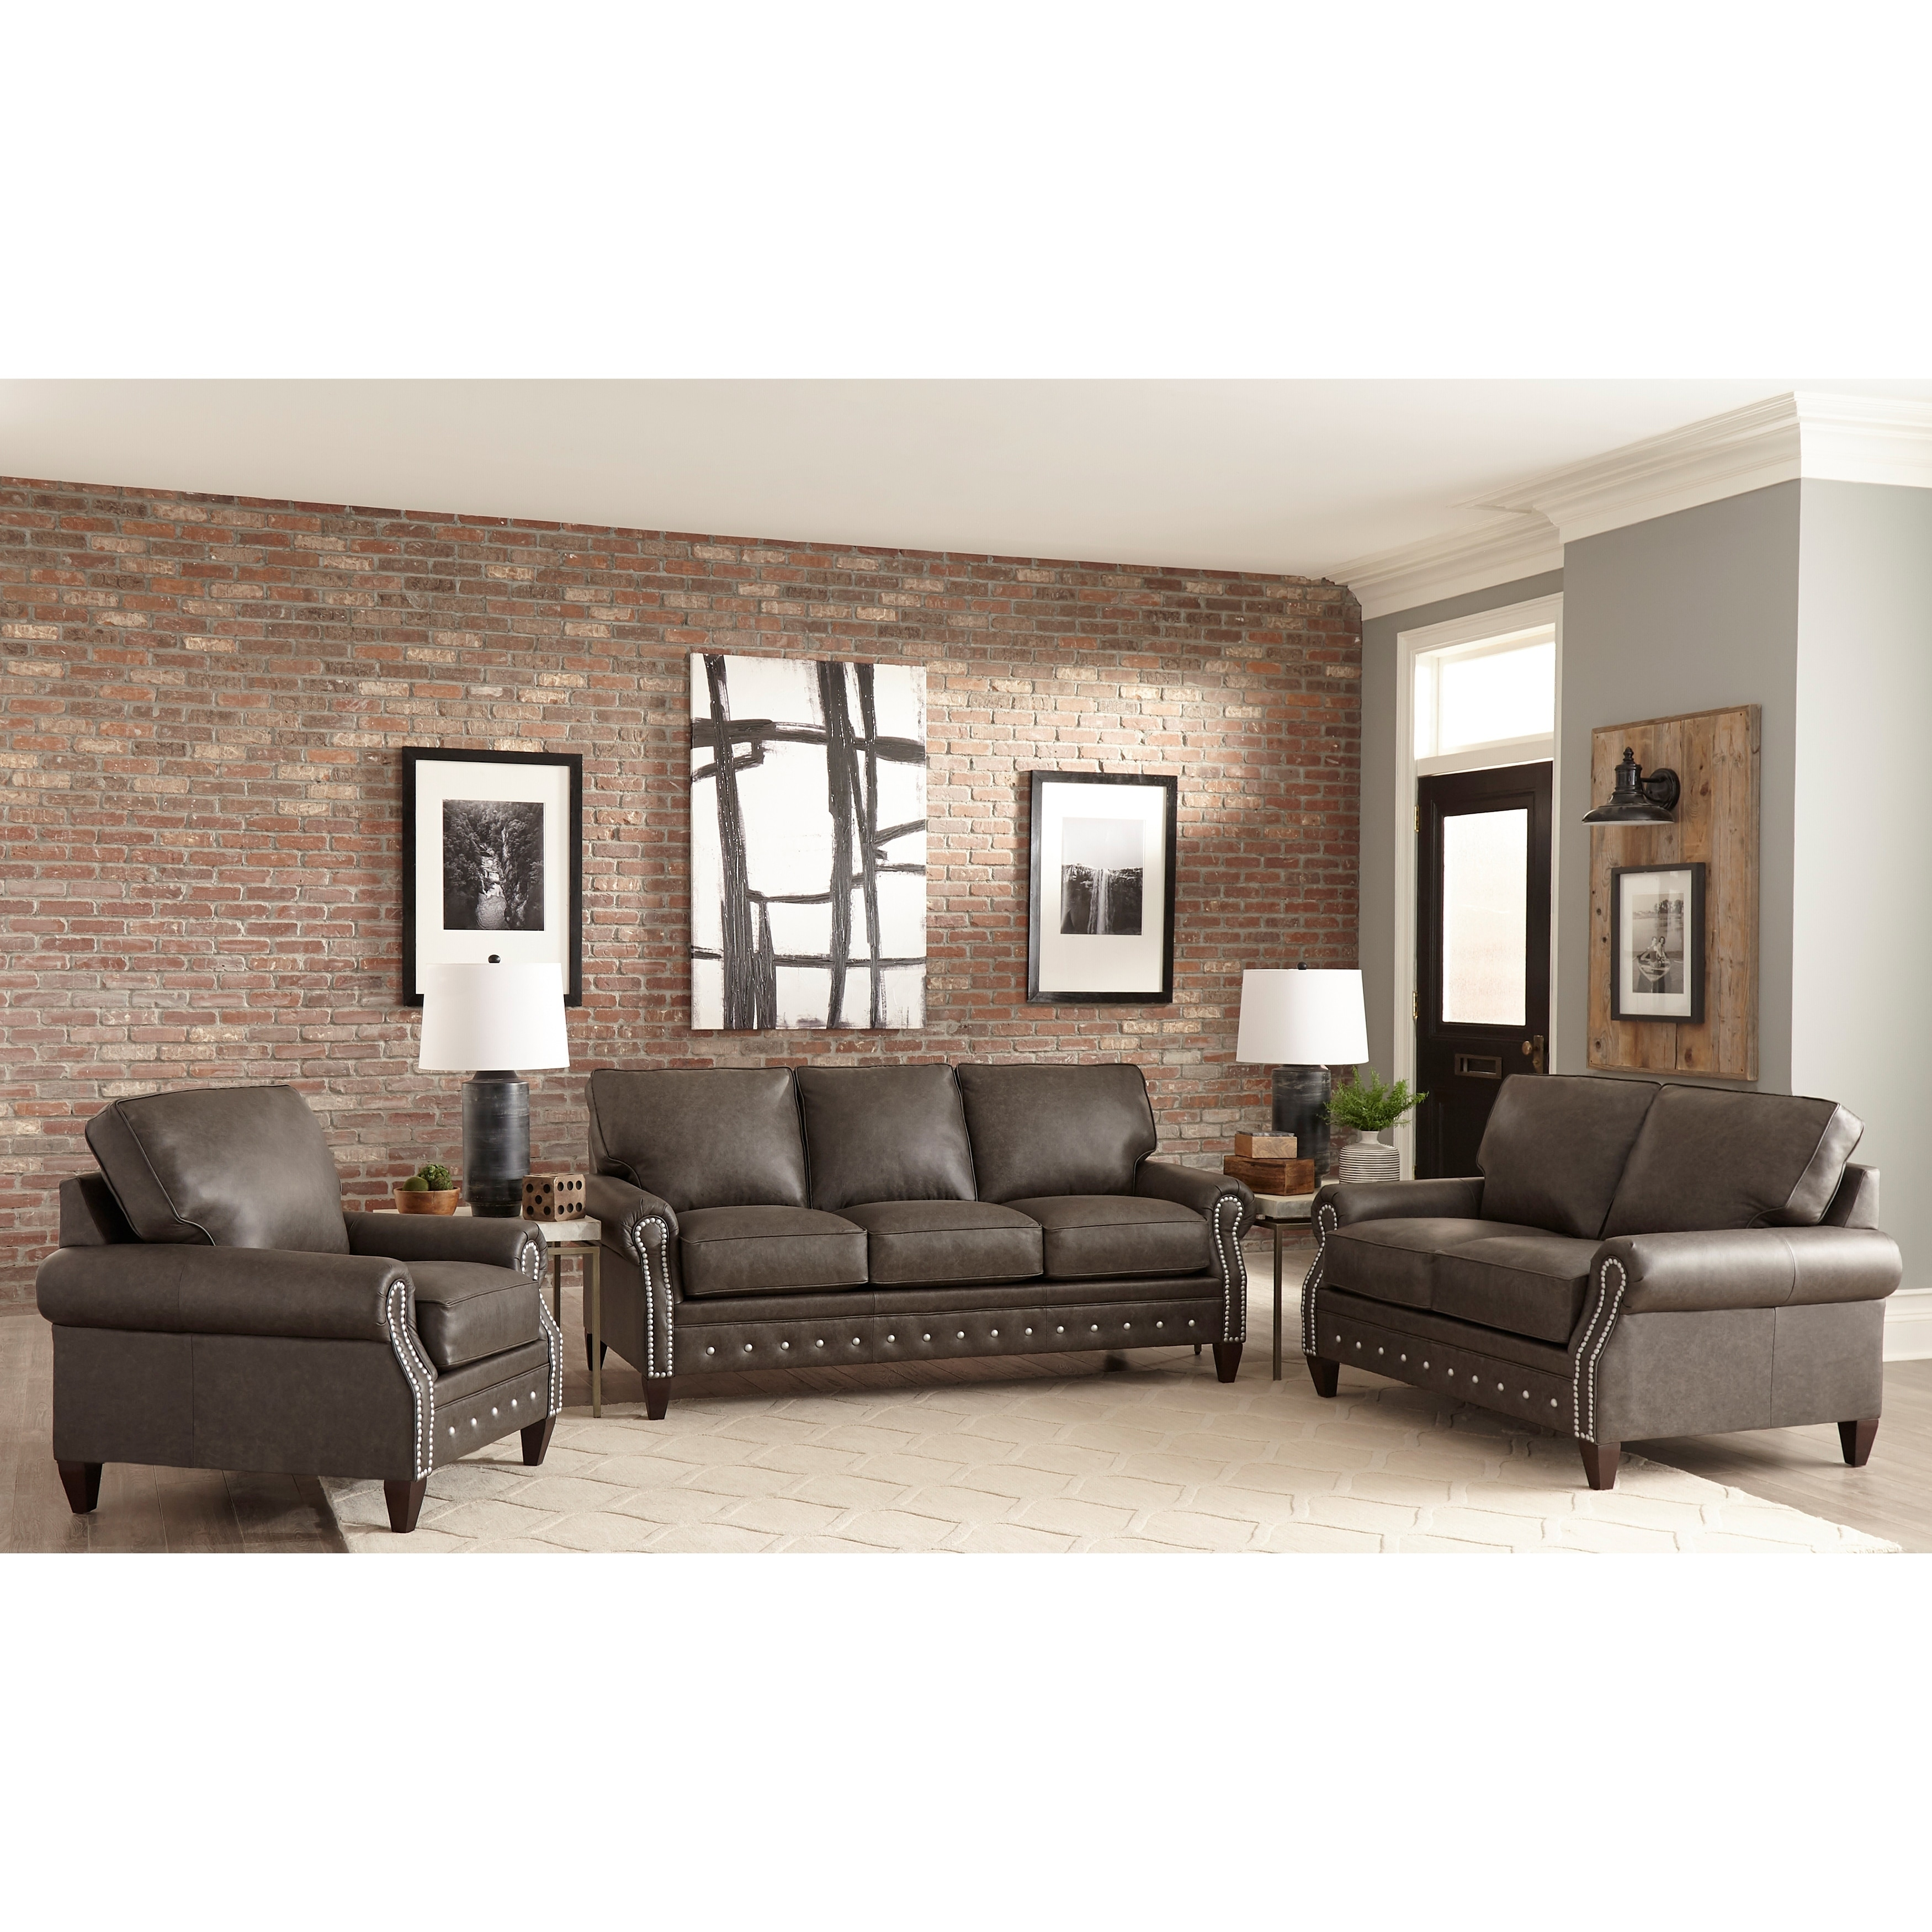 Made in usa payne top grain leather sofa loveseat and chair